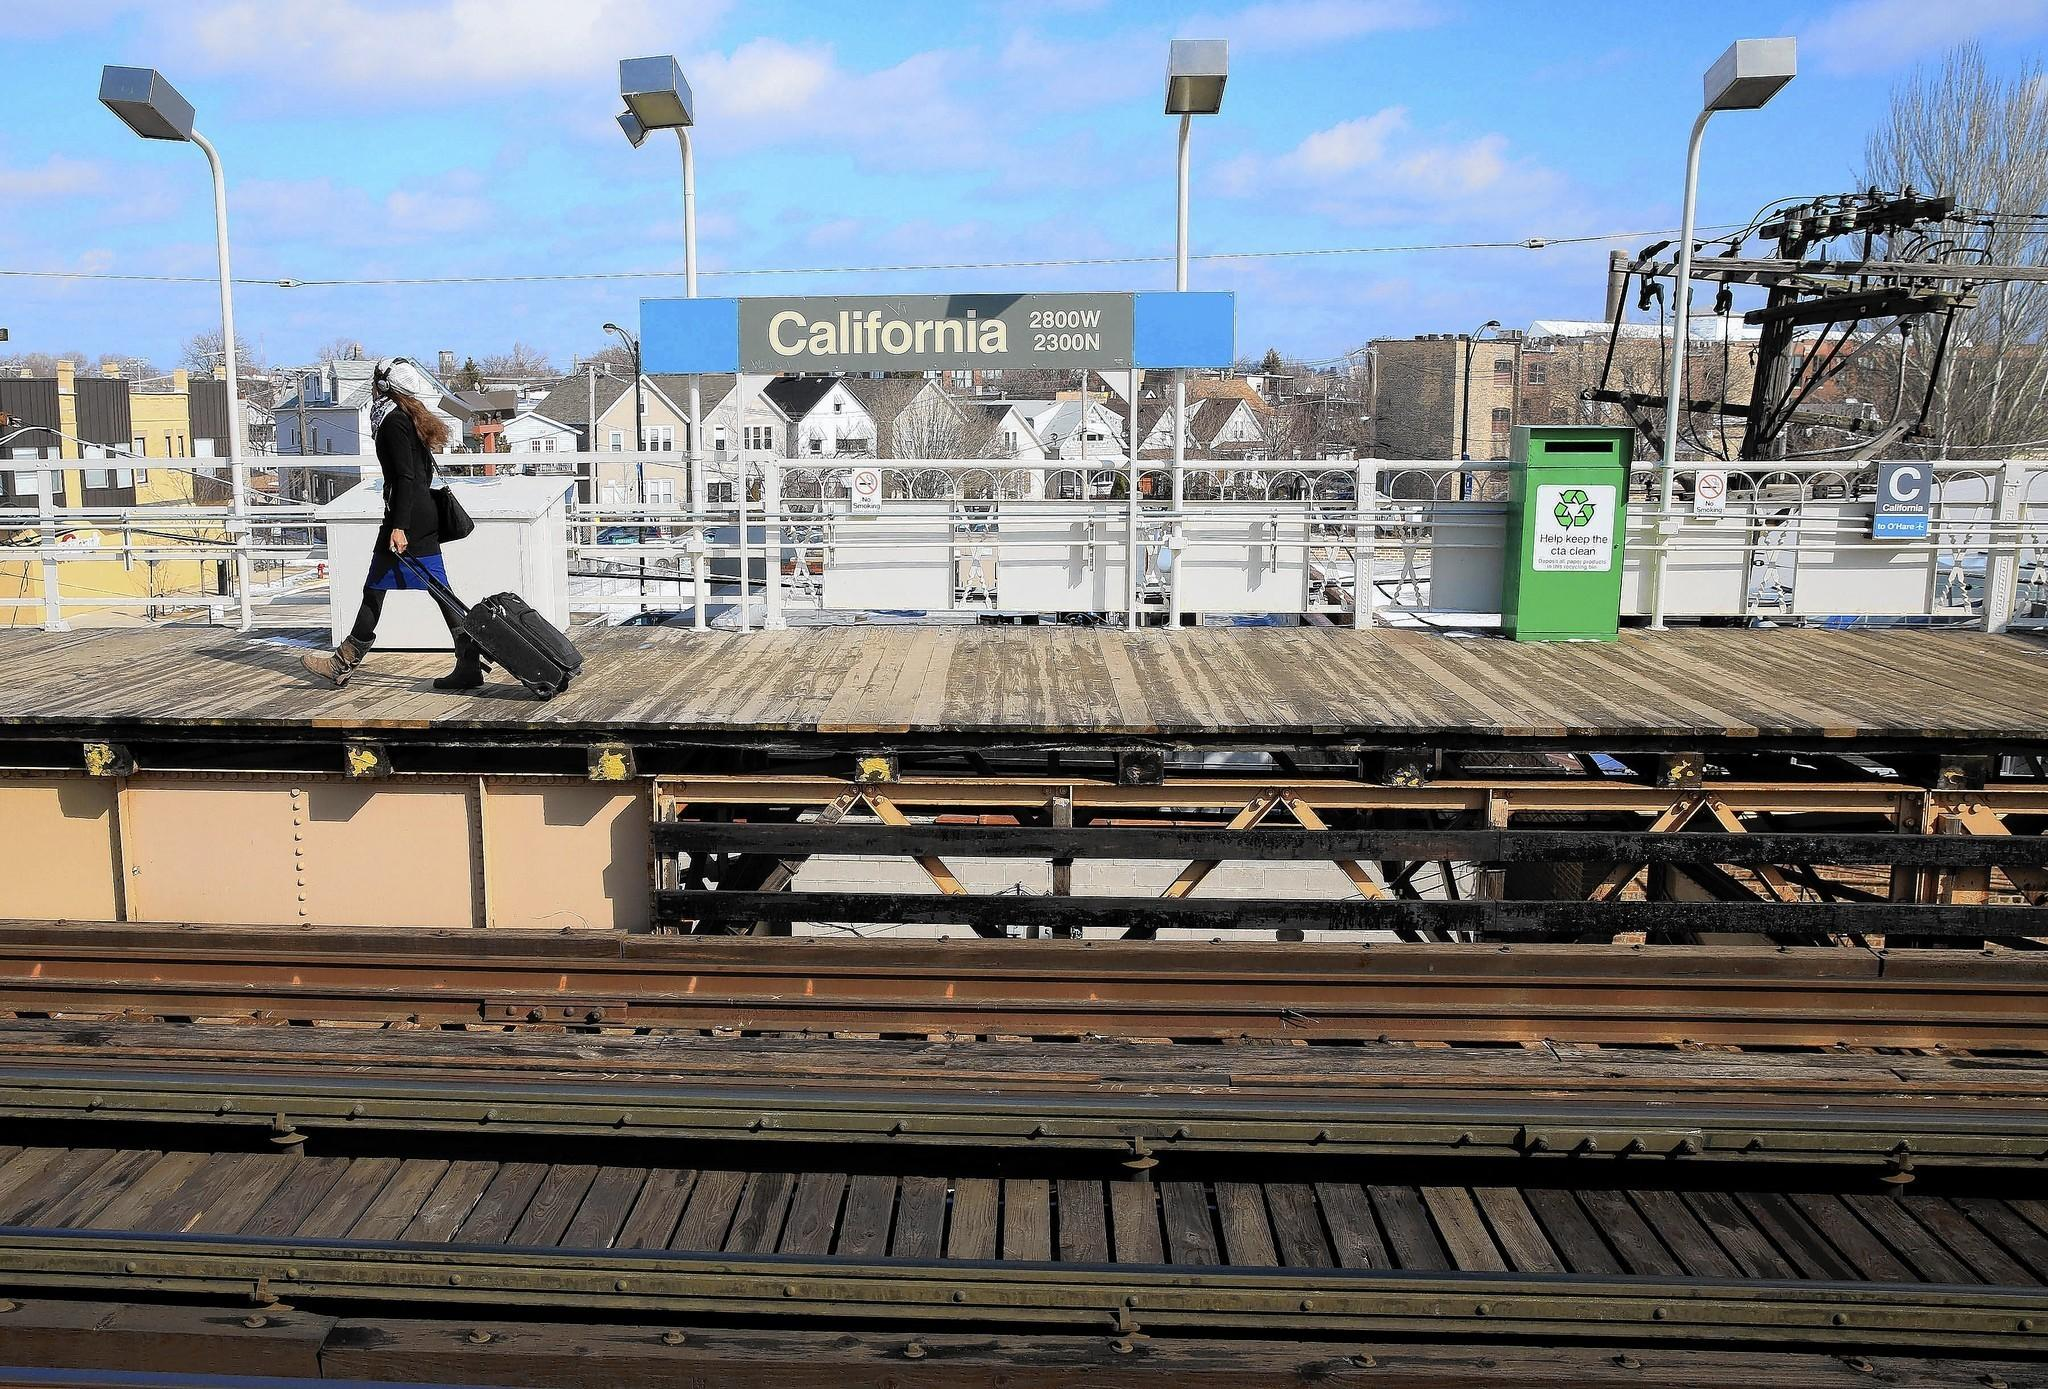 The Blue Line renovation begins on Friday through the morning of March 24, when the California Avenue station will be temporarily closed for track work between the Western and Logan Square stations.